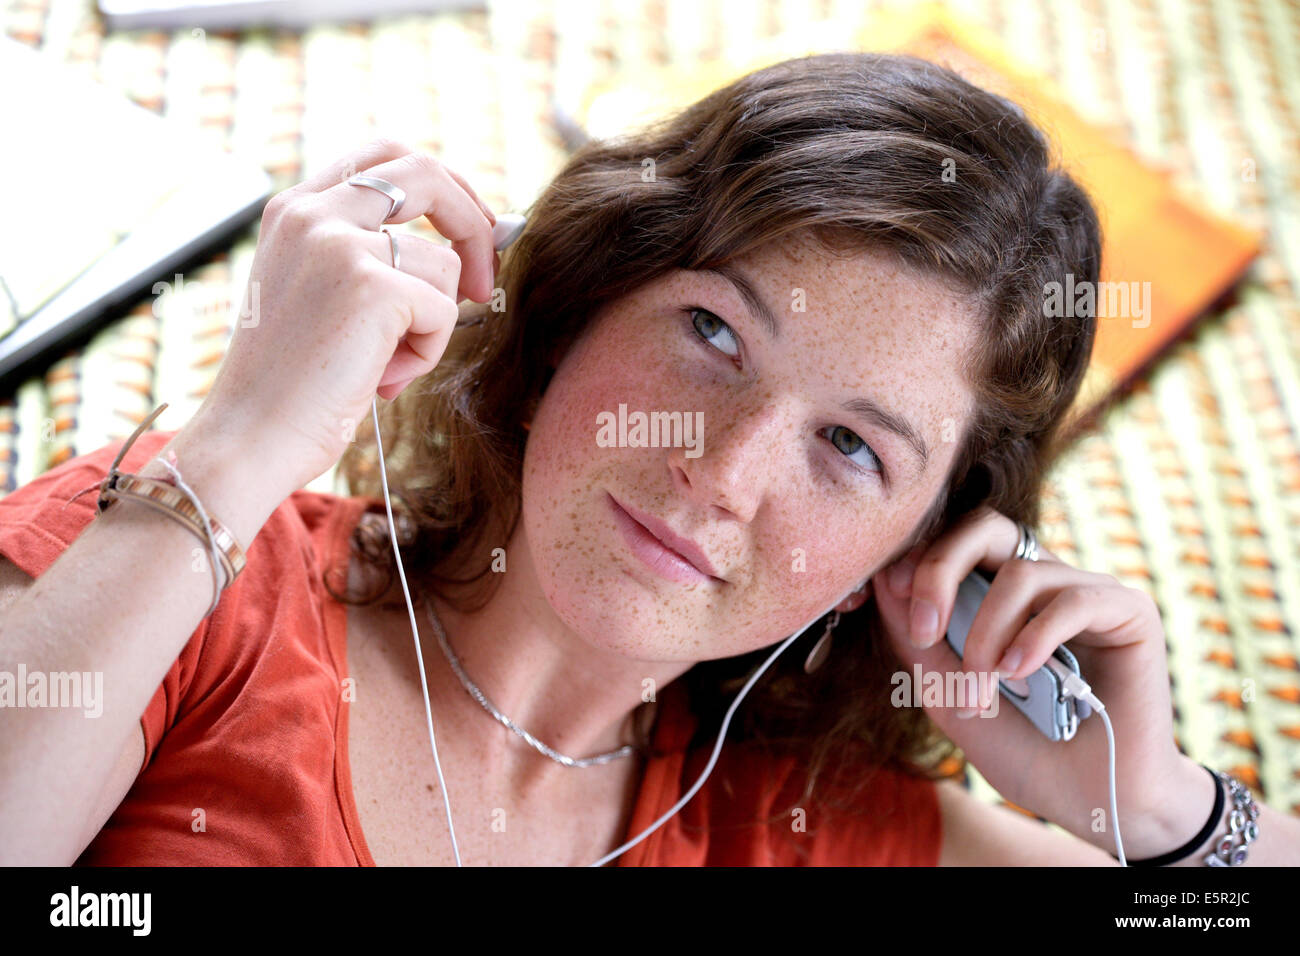 Teenage girl listening music with mp3 player. - Stock Image